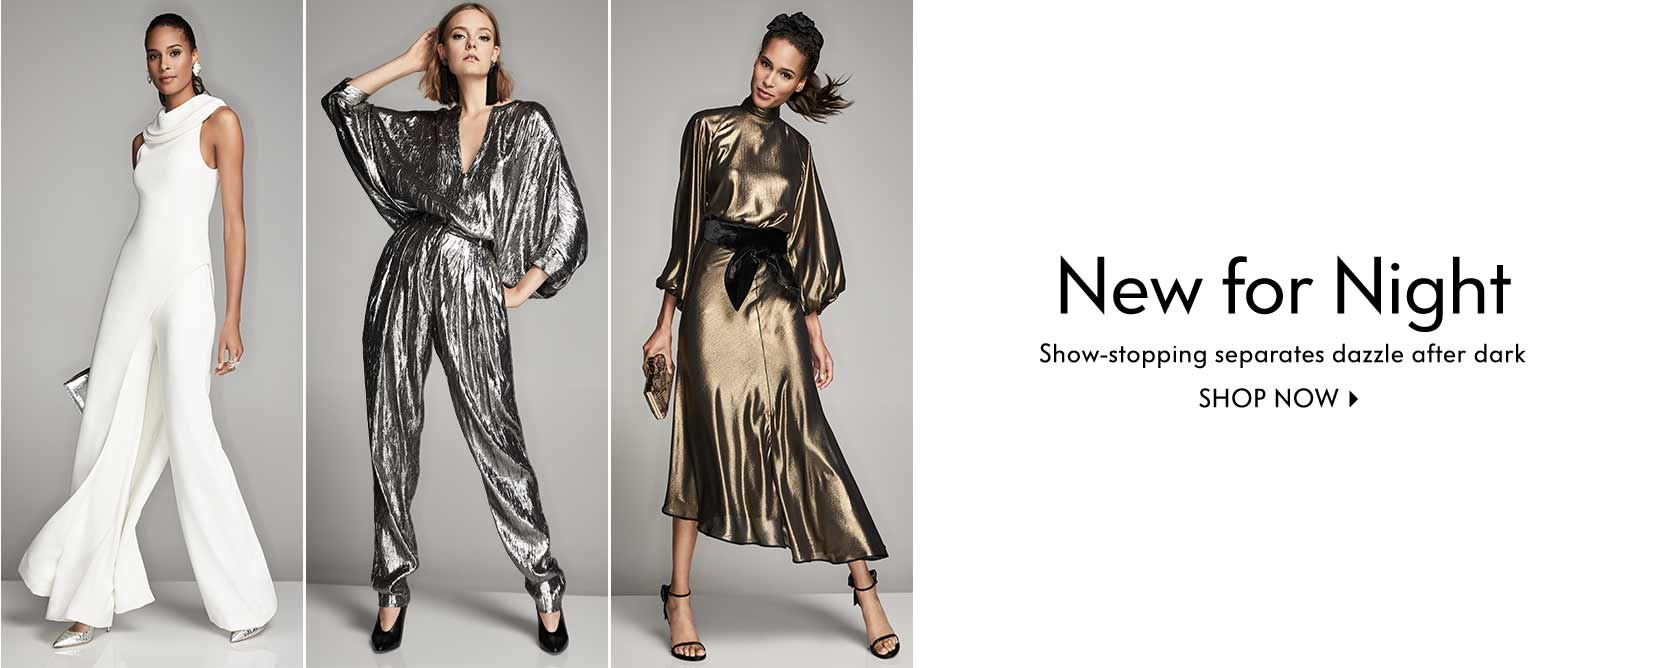 New for Night Show-stopping separates dazzle after dark Shop now